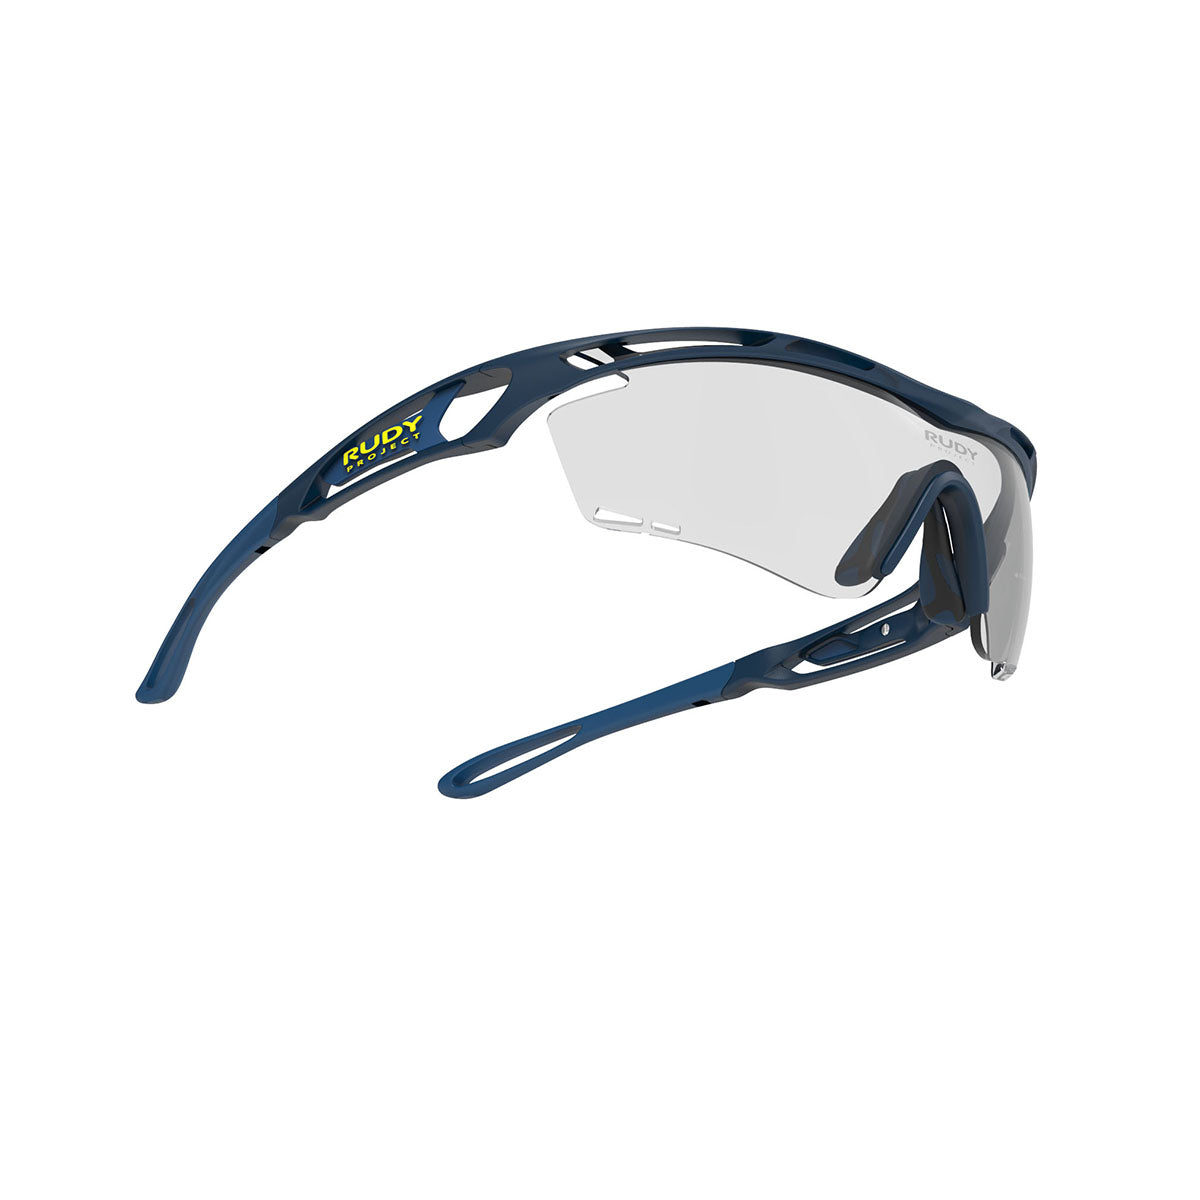 Rudy Project - Tralyx - frame color: Blue Navy Matte - lens color: ImpactX-2 Photochromic Clear to Black - photo angle: Bottom Front Angle Variant Hover Image